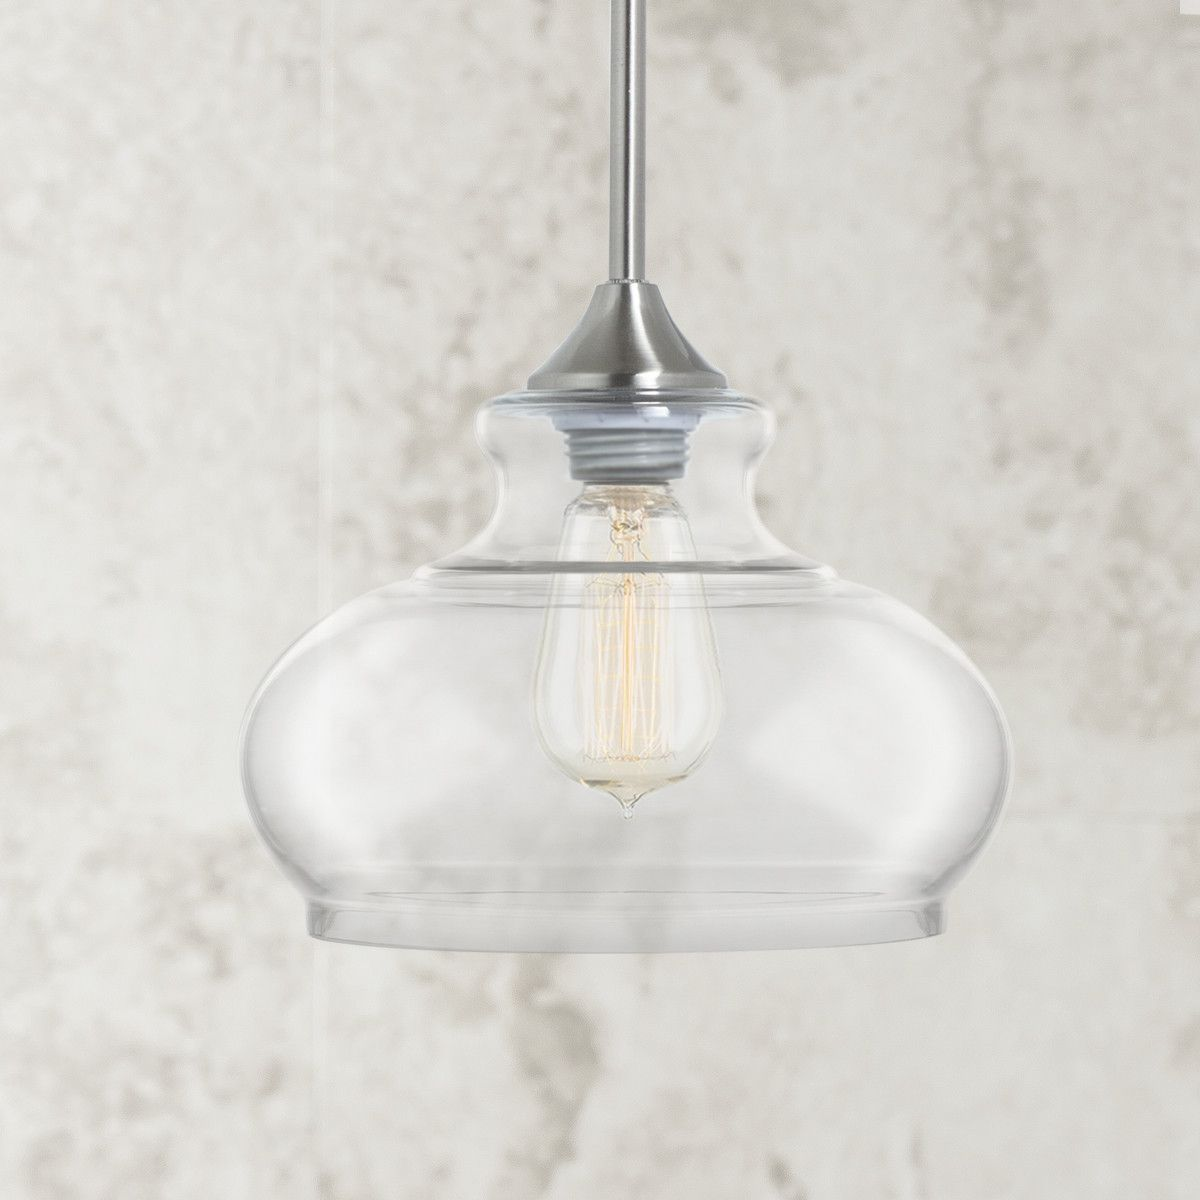 Ariella ovale clear glass pendant lamp brushed nickel brushed ariella ovale clear glass pendant lamp brushed nickel arubaitofo Gallery